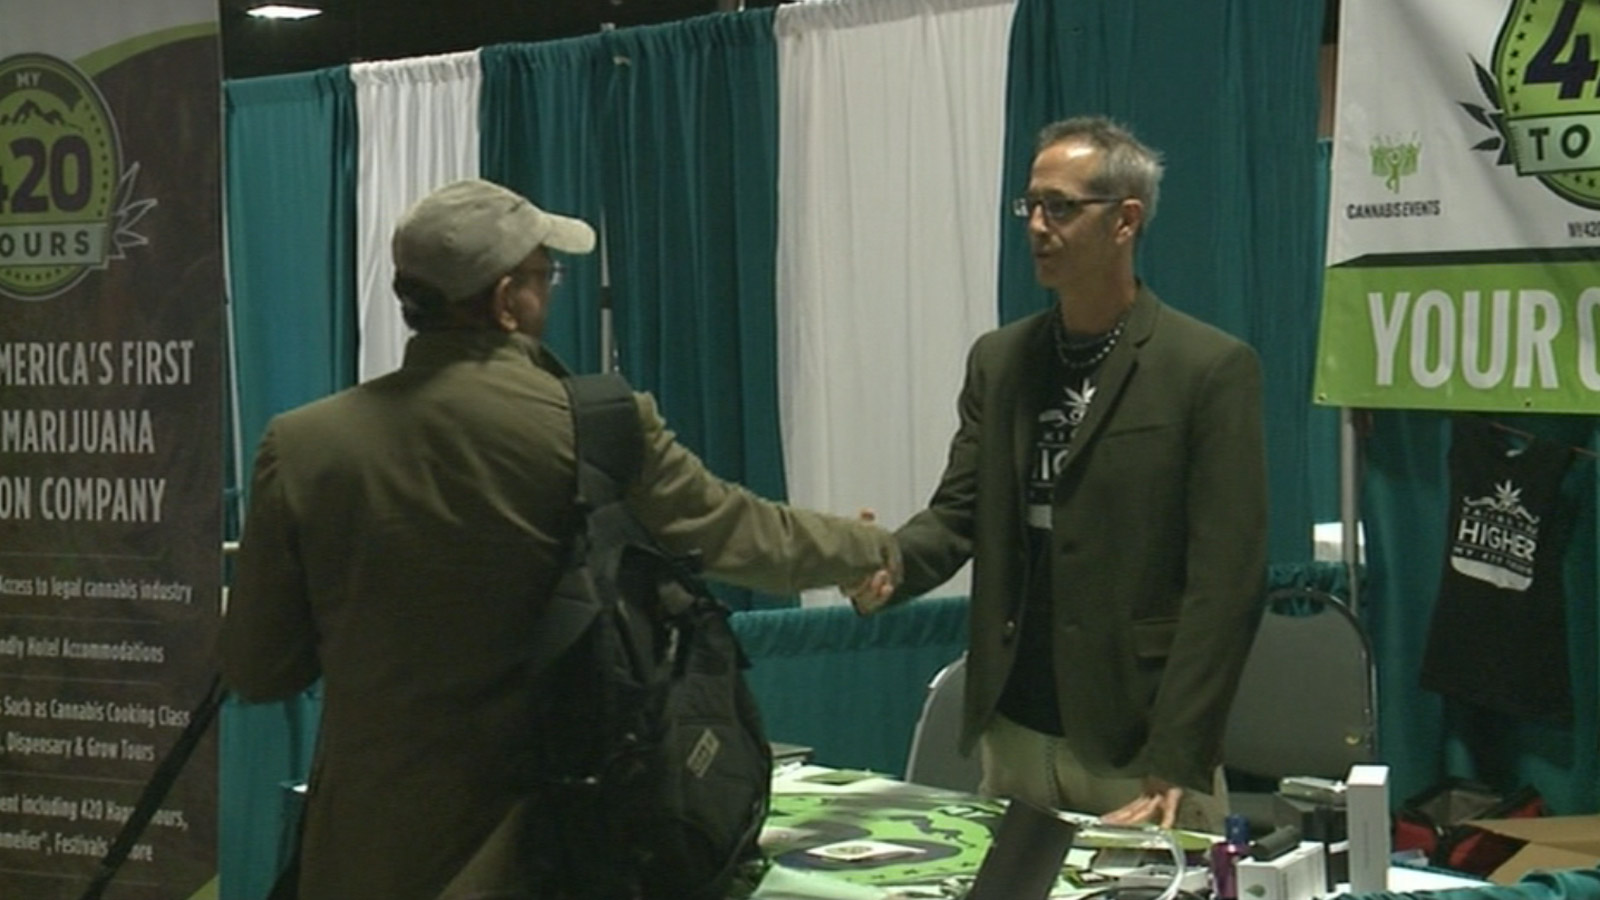 Marijuana Investor Summit (credit: CBS)